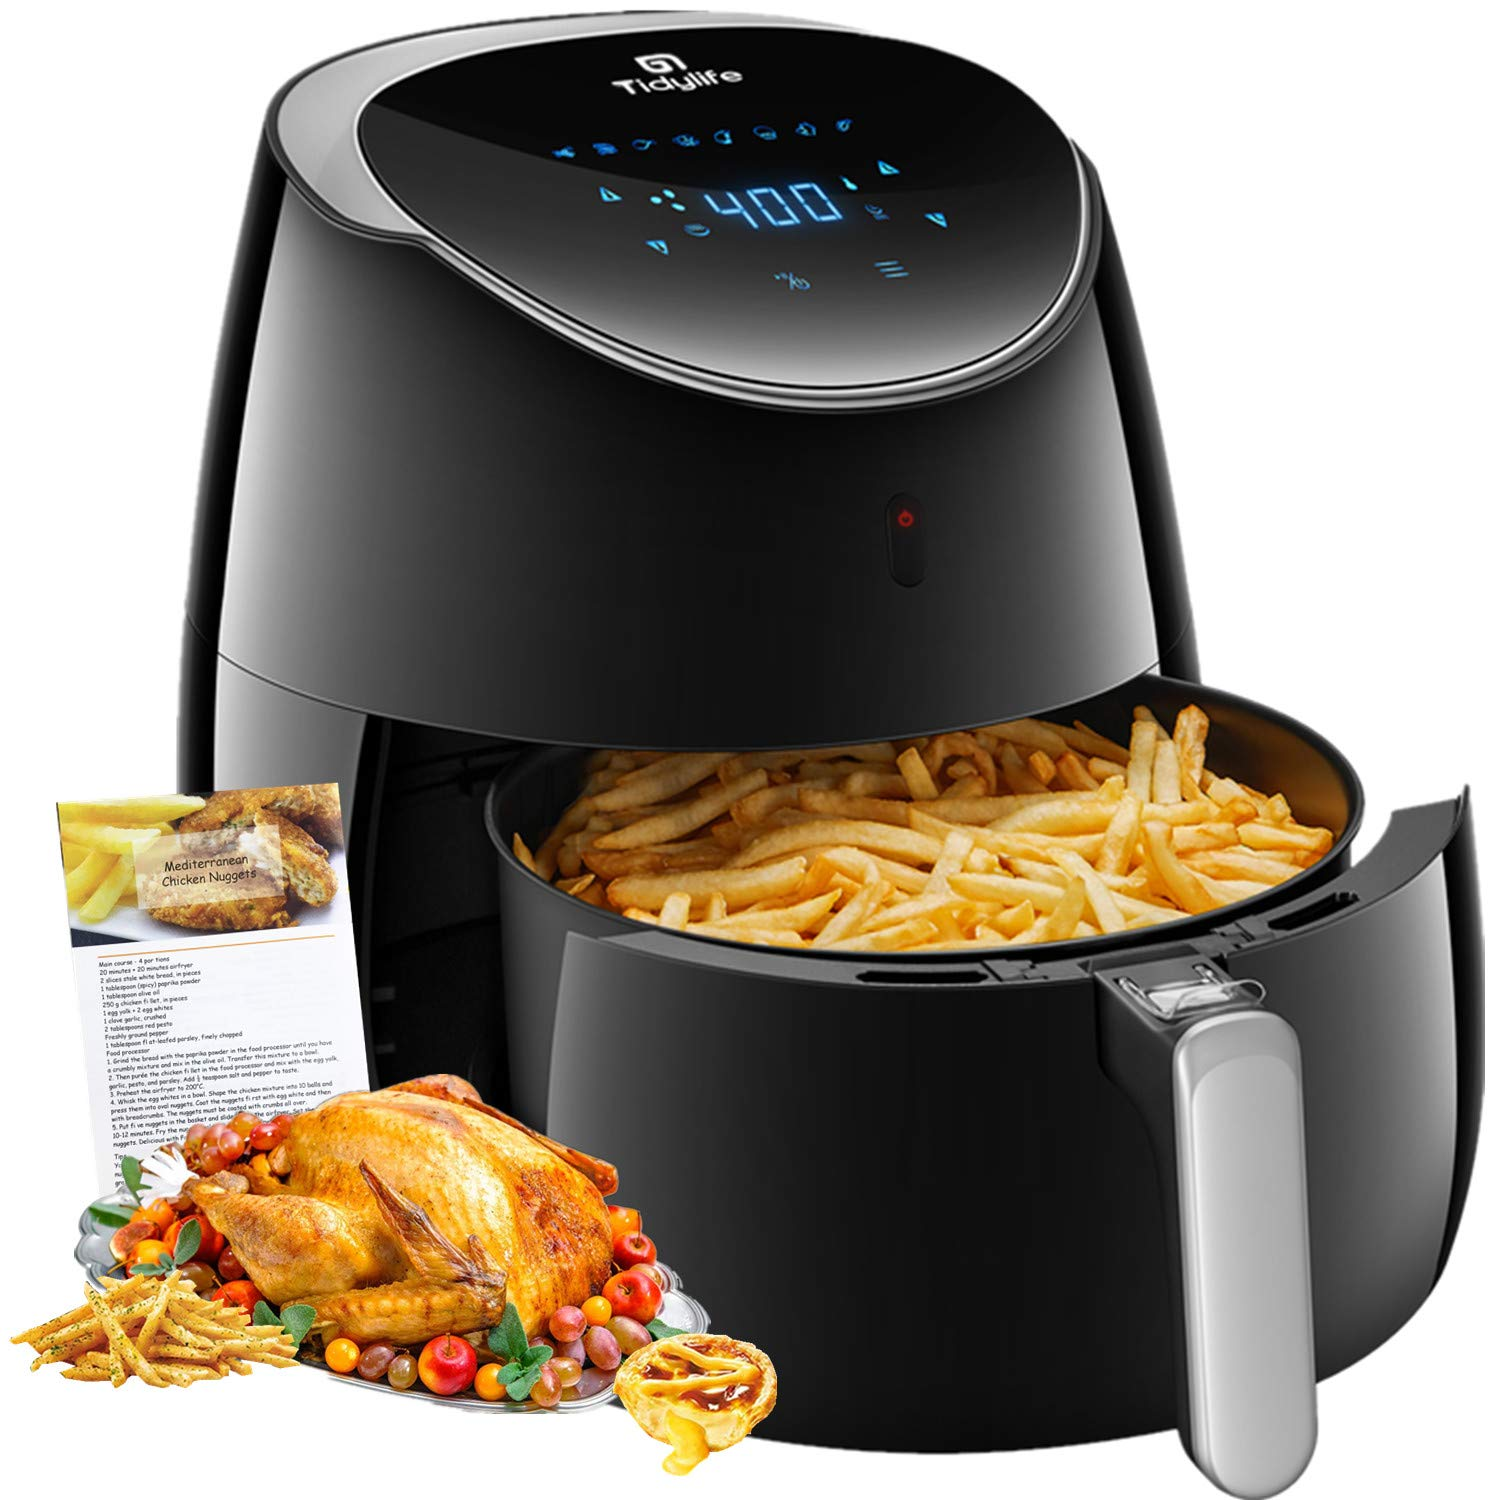 Air fryer, Tidylife 5.8 QT Air Fryer XL with LCD Digital Touchscreen, 1700W Electric Hot Air Fryer with 8 Cooking Preset, Fast Oilless Cooking, Auto Shut Off with 50 Recipes